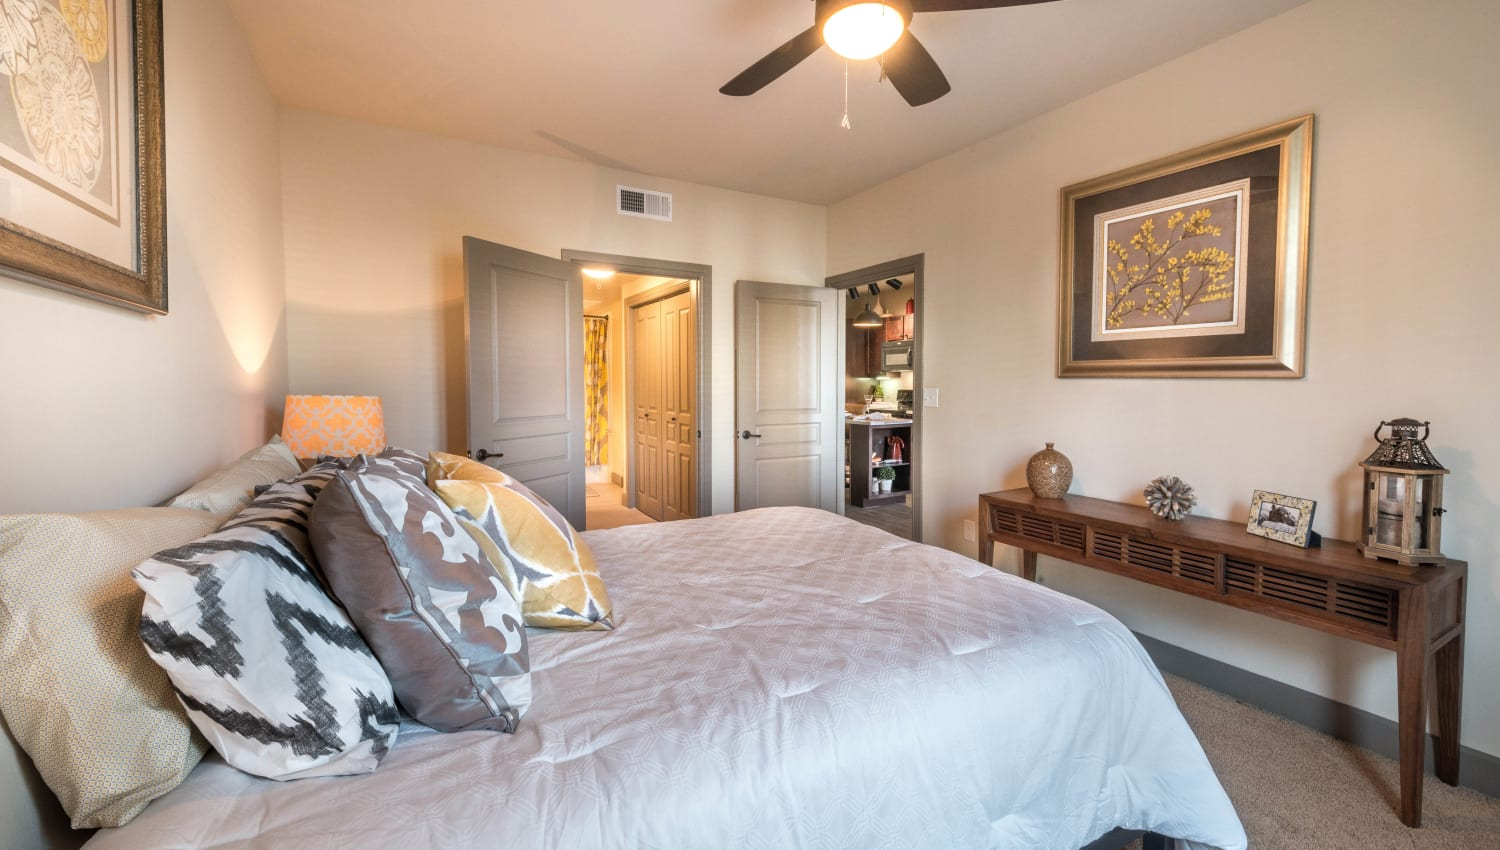 Well-furnished master bedroom in a model home at Union At Carrollton Square in Carrollton, Texas